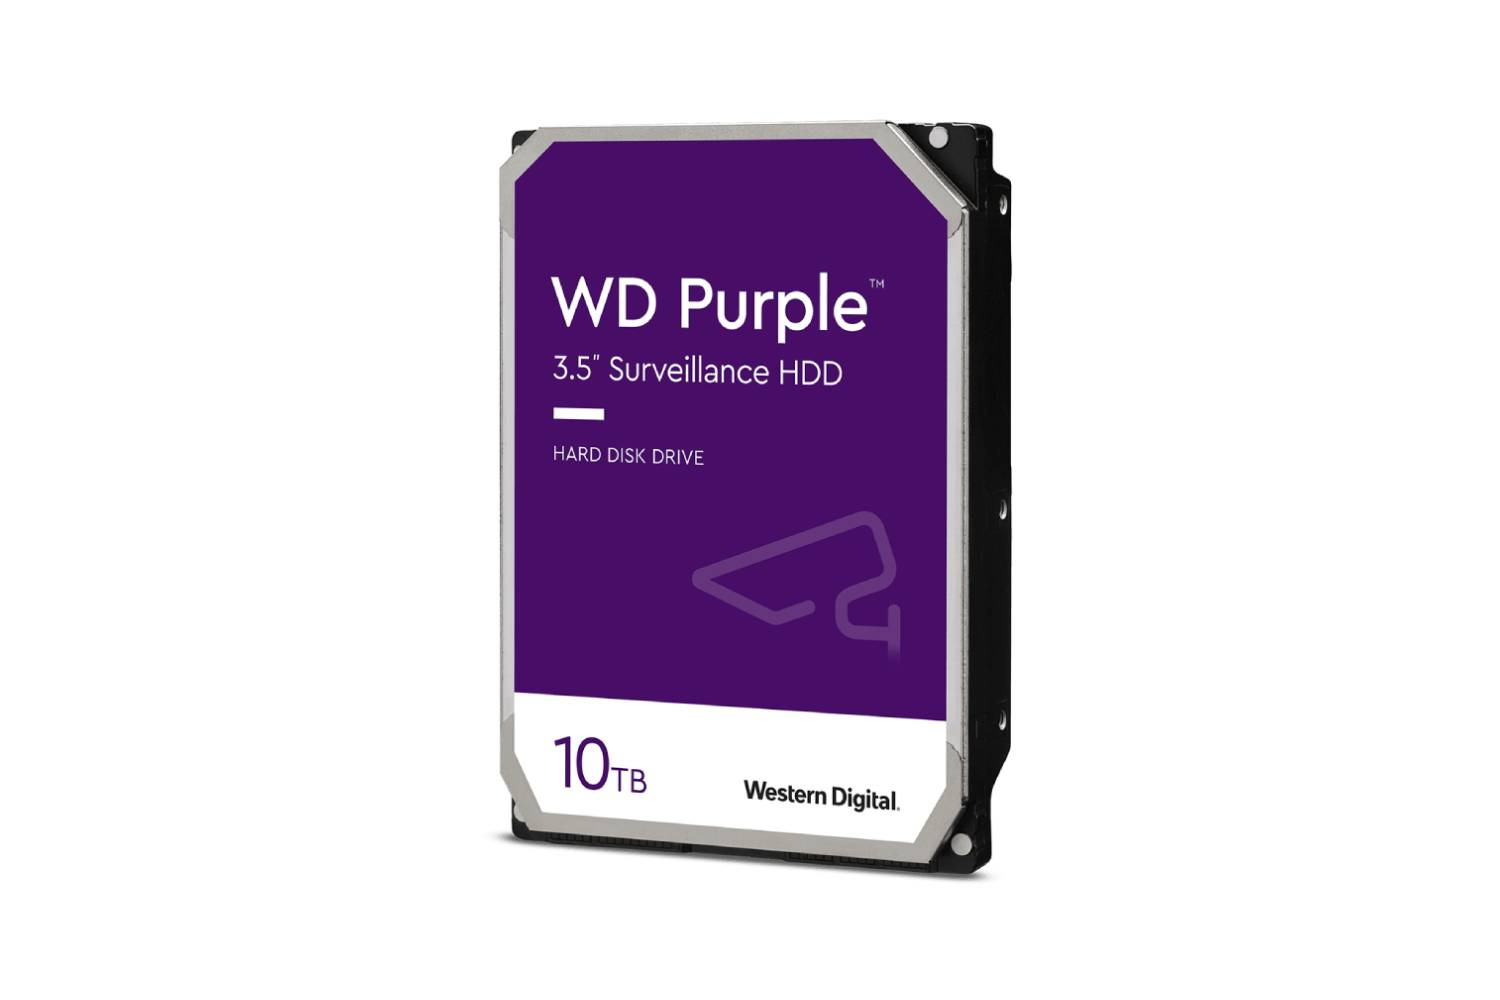 WD Purple 10TB Surveillance HDD (WD100PURZ)